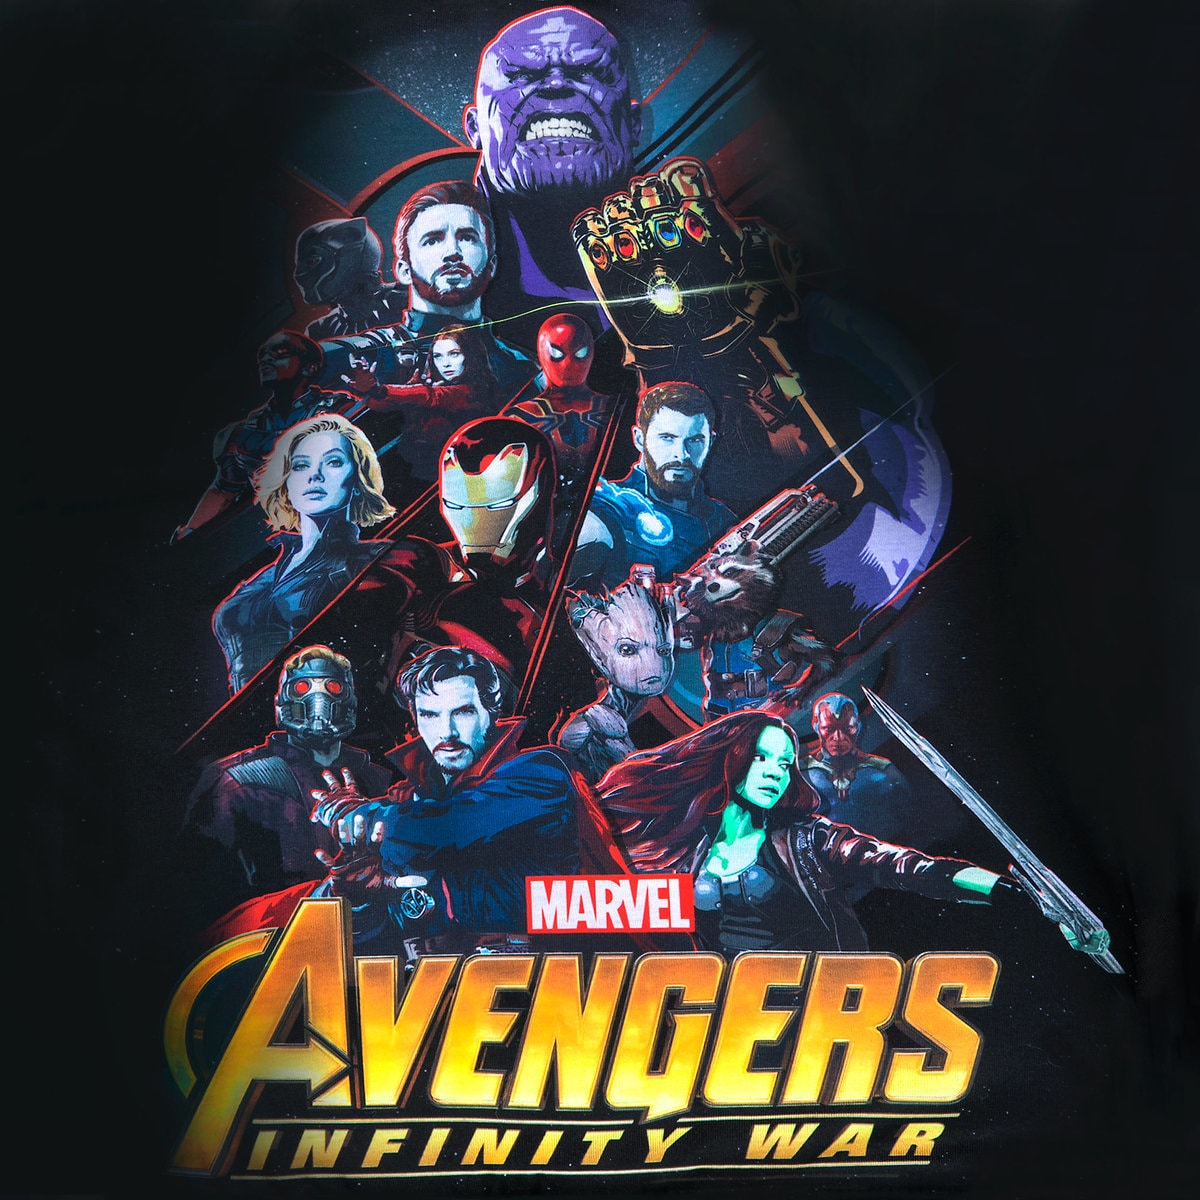 marvels avengers infinity war reflective bomber jacket for boys - Avengers Marvel